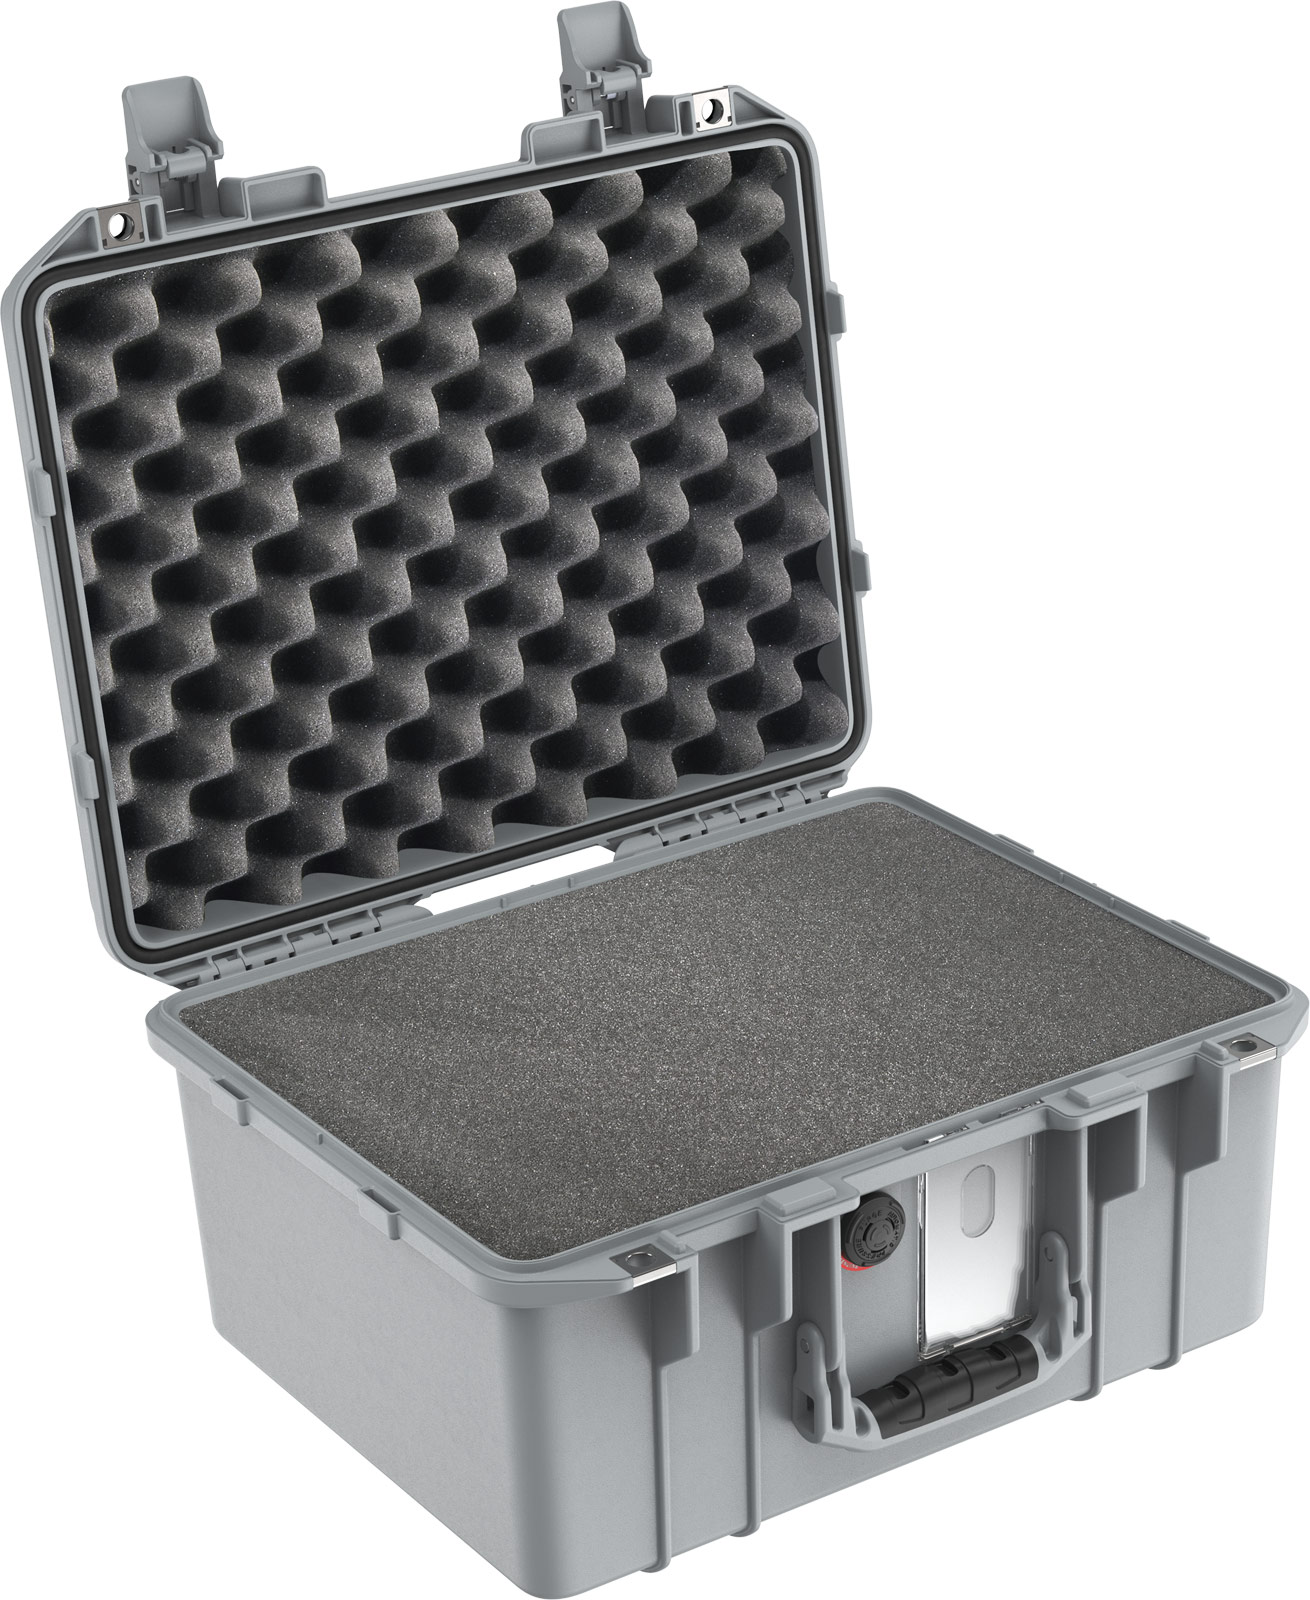 pelican air 1507 silver carry on case